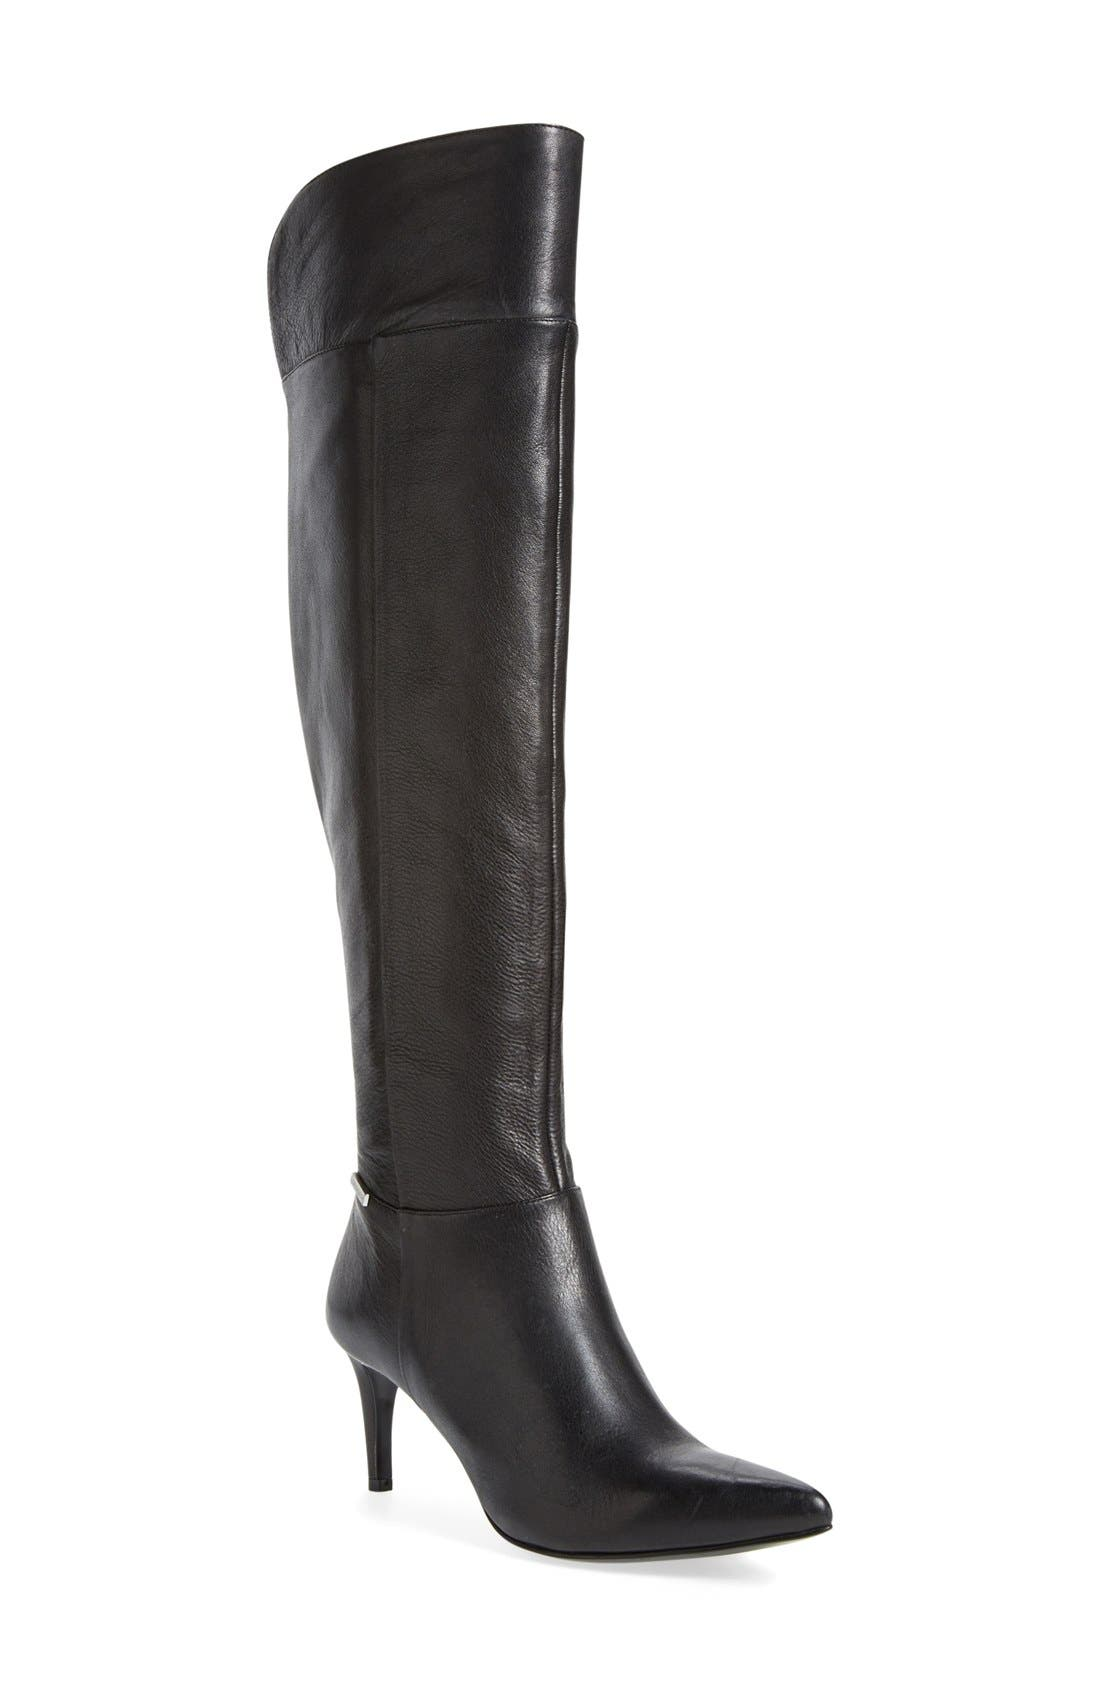 Alternate Image 1 Selected - Calvin Klein 'Clancey' Over the Knee Boot (Women)